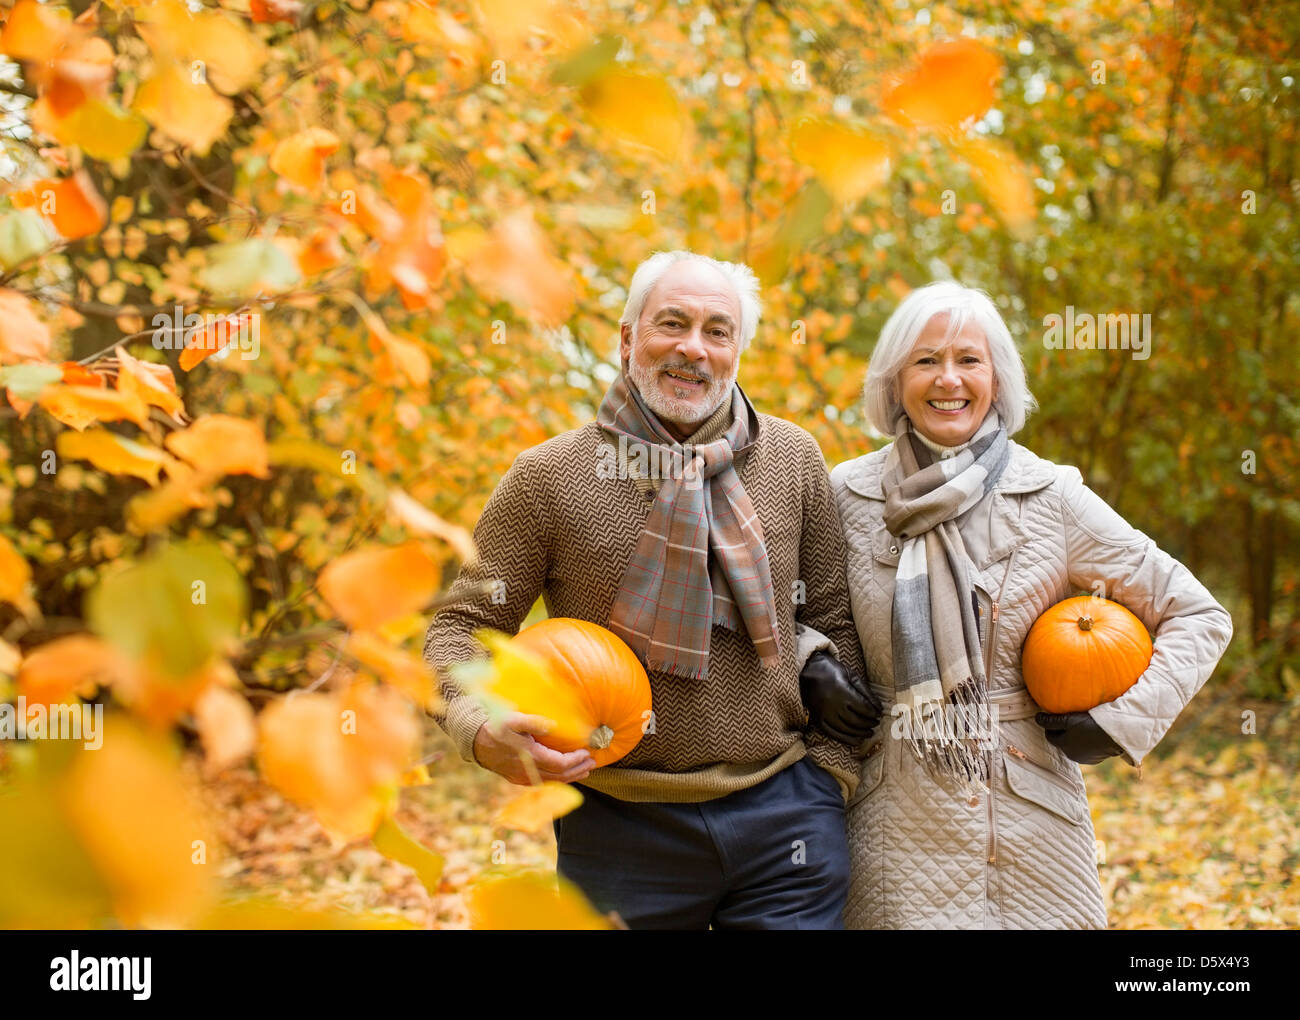 Older couple carrying pumpkins in park - Stock Image